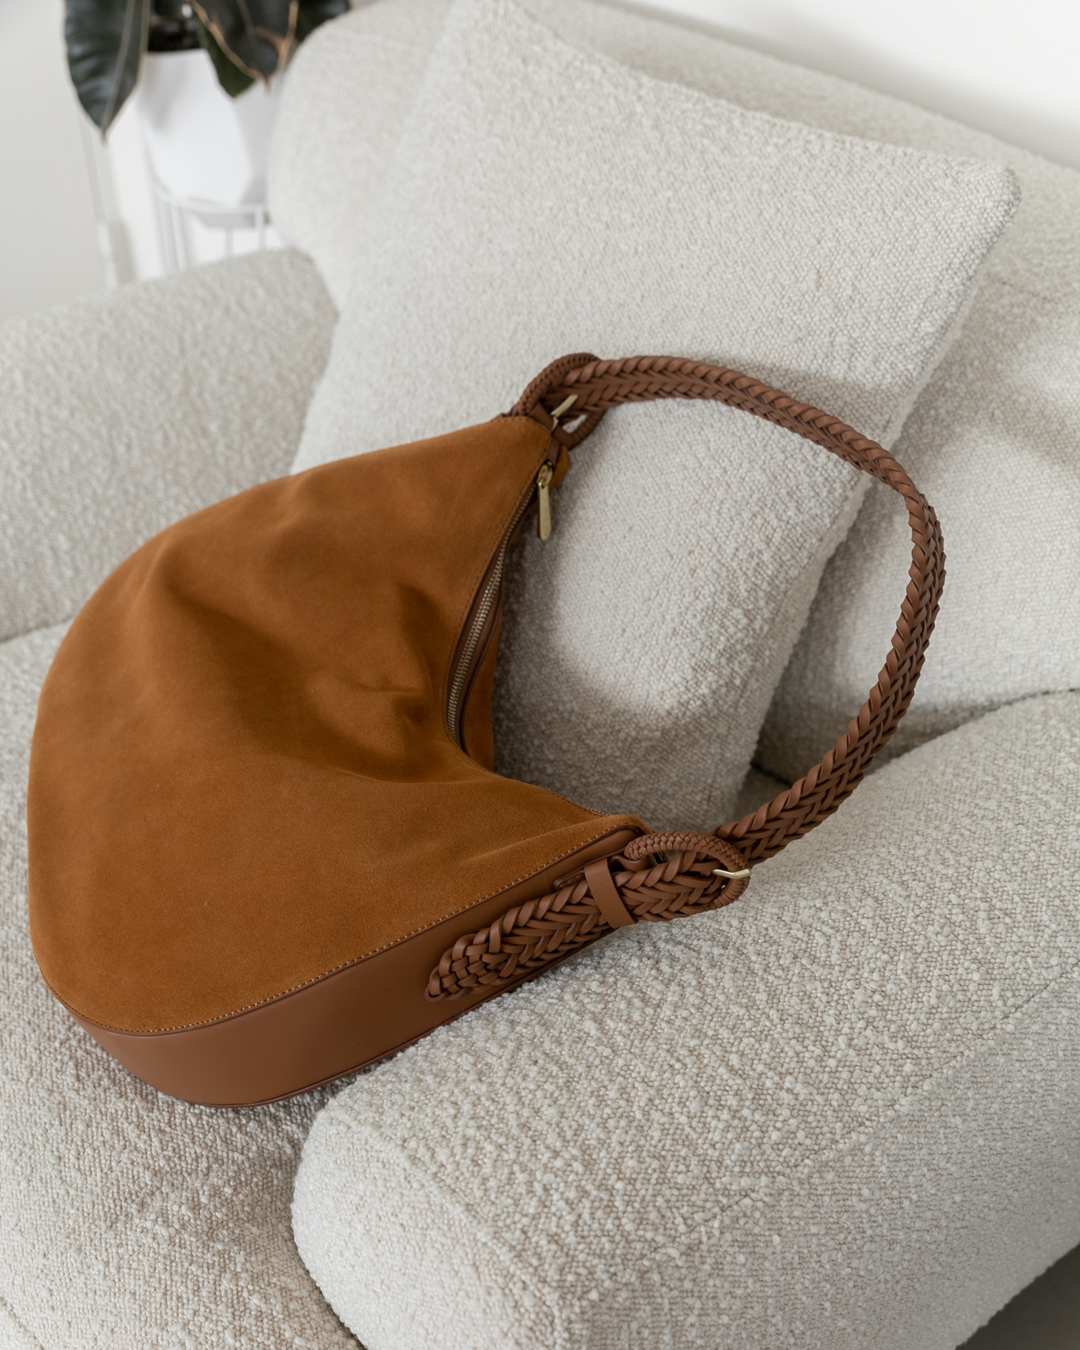 Suede handbag on a boucle chair